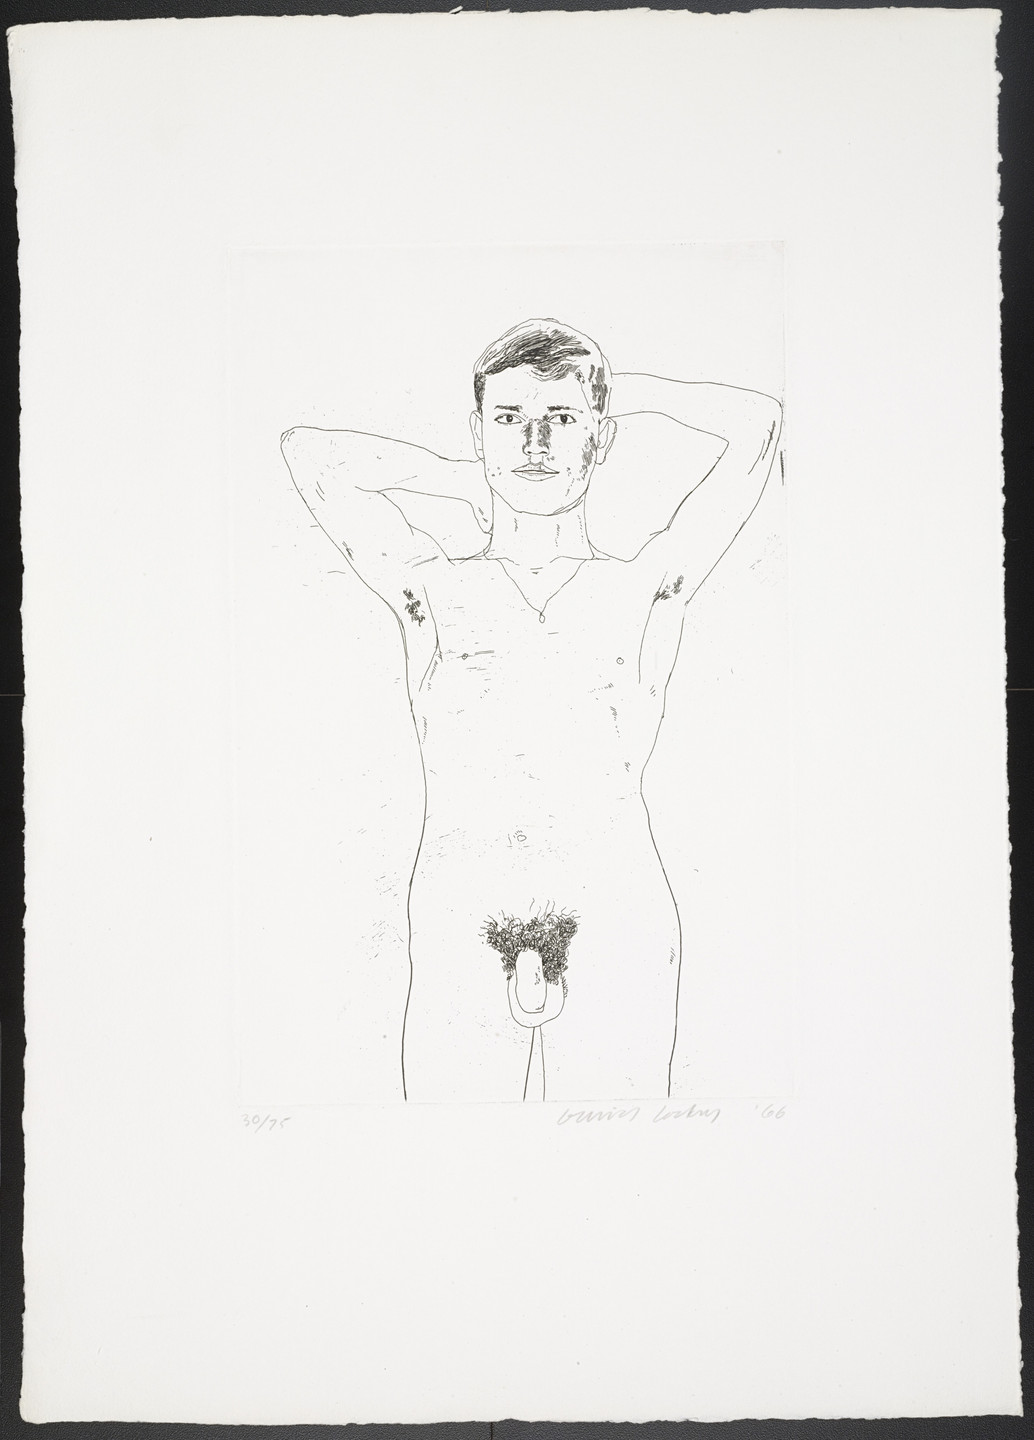 David Hockney. In an Old Book from Fourteen Poems. 1966, published 1967